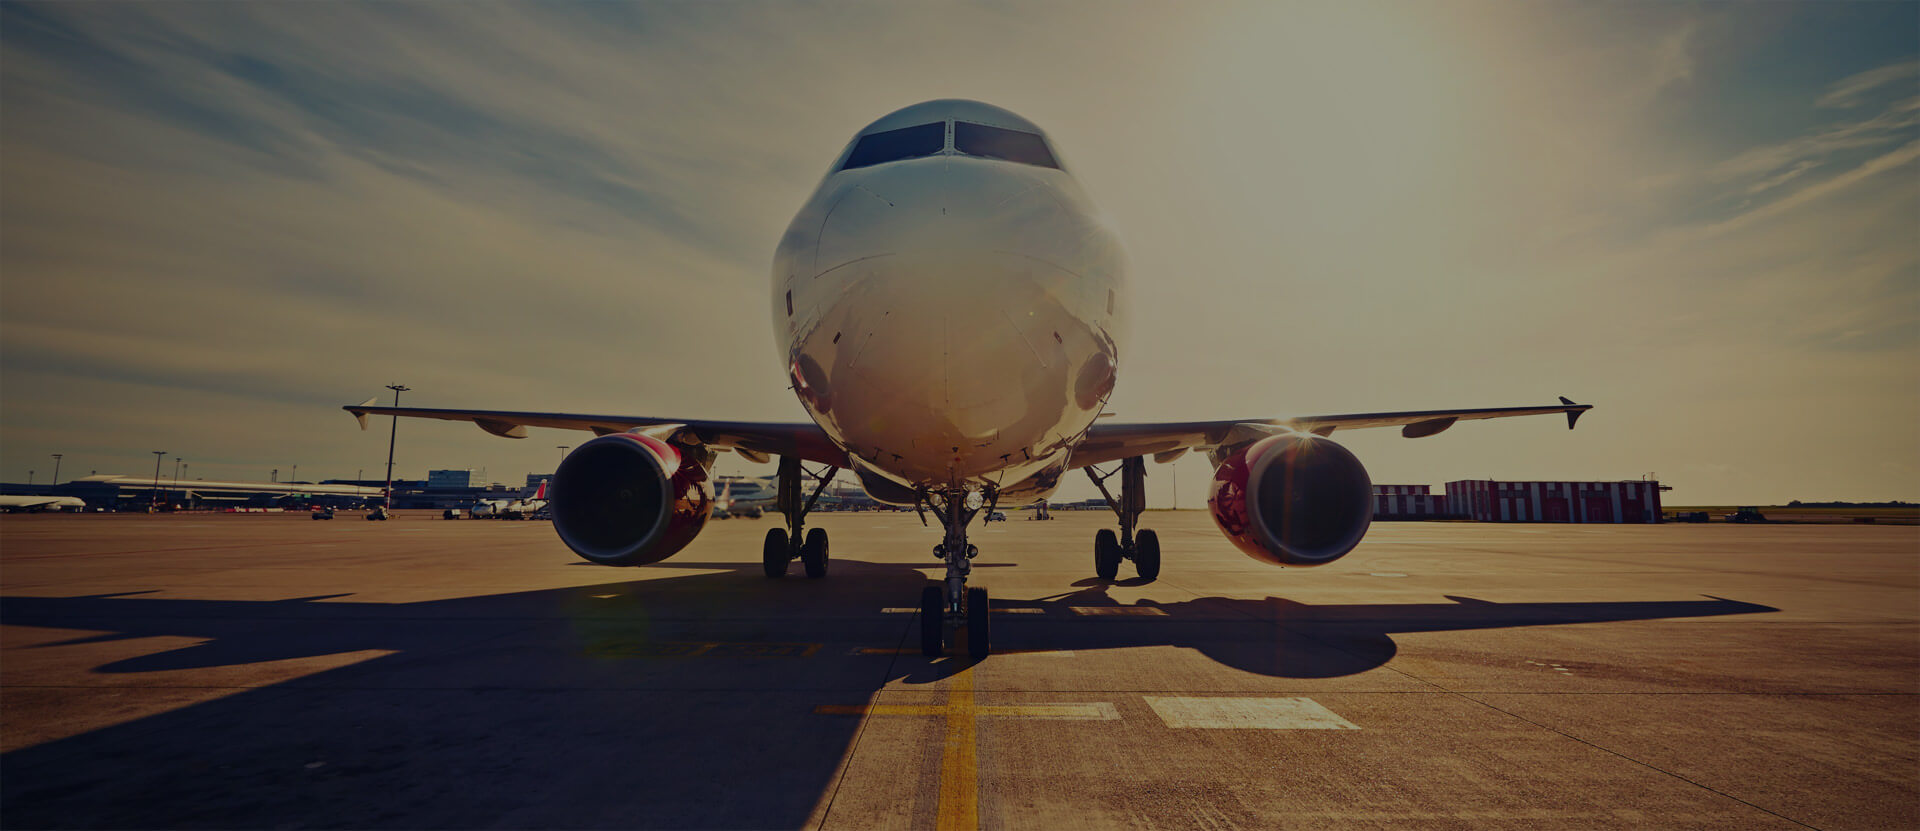 Aerospace manufacturer uses aviation industry software to build a plane on runway.